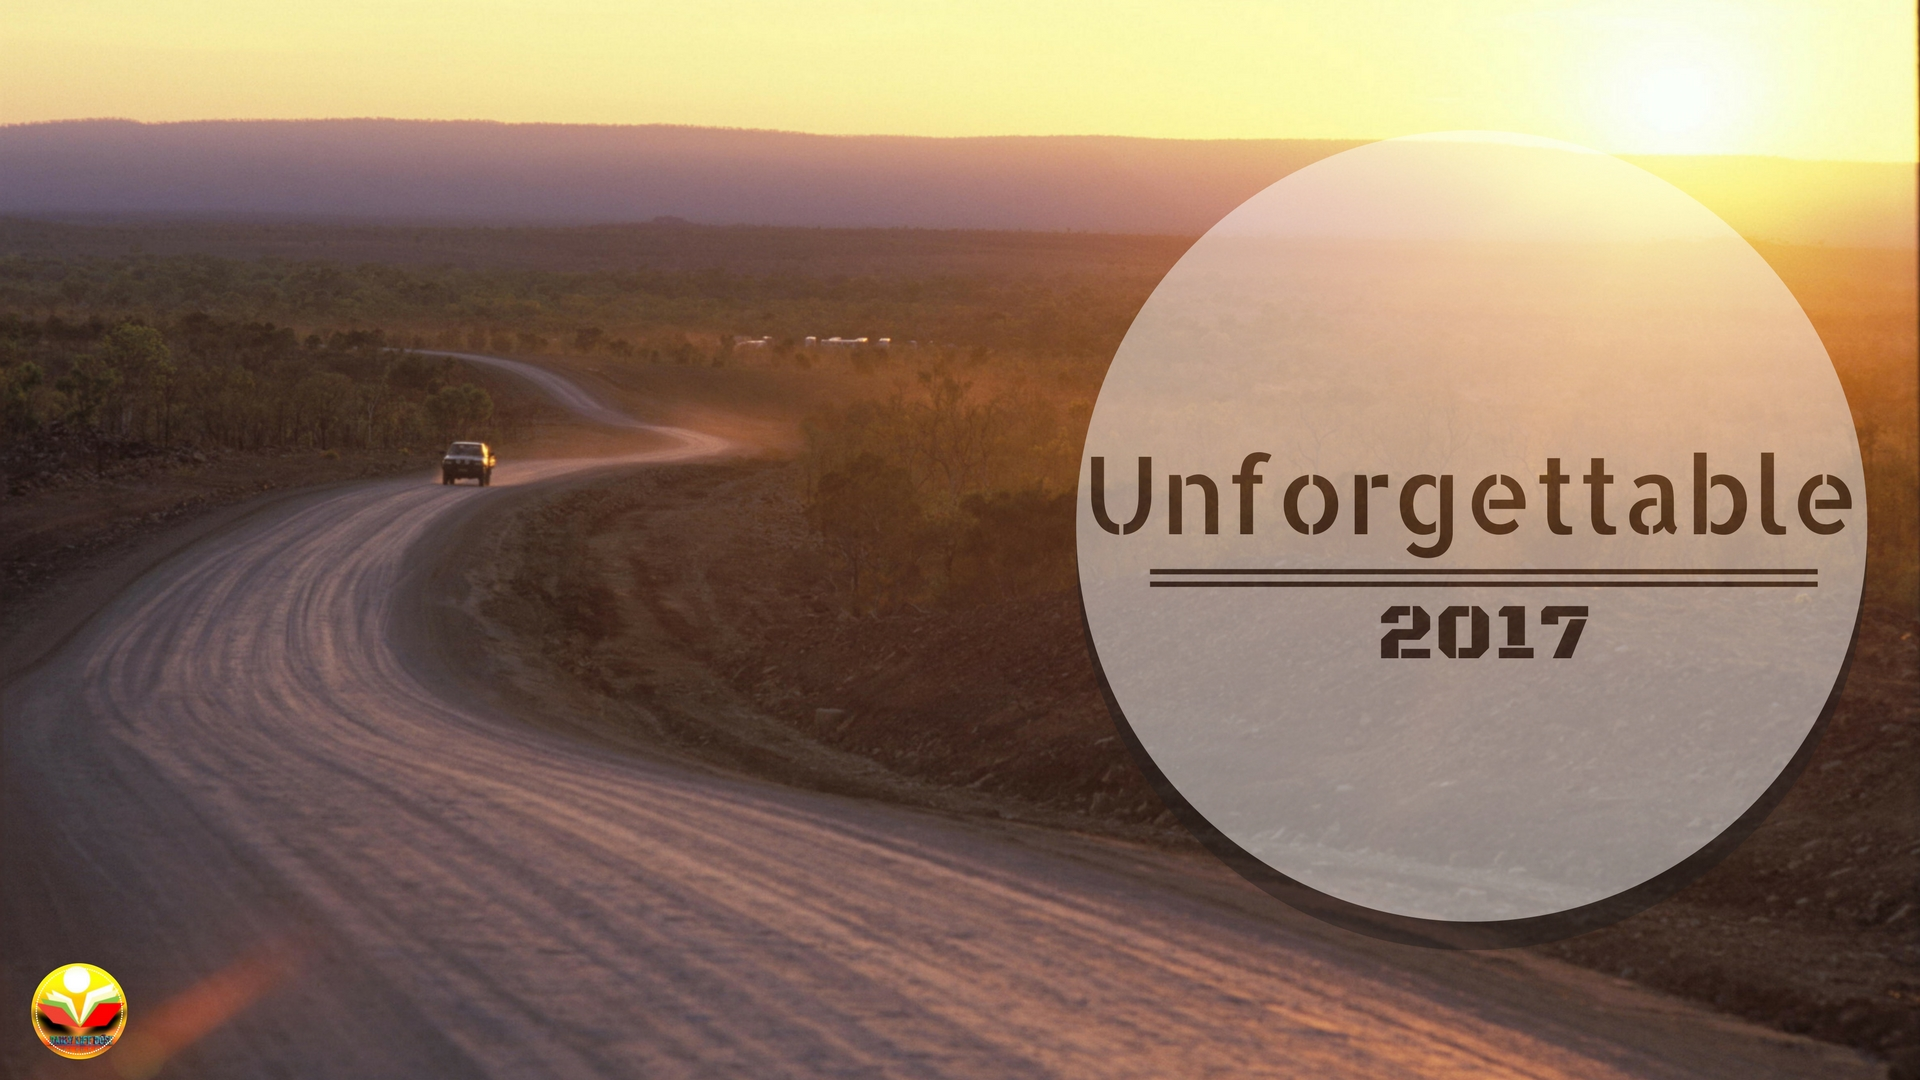 Unforgettable 2017 - Look back Once More